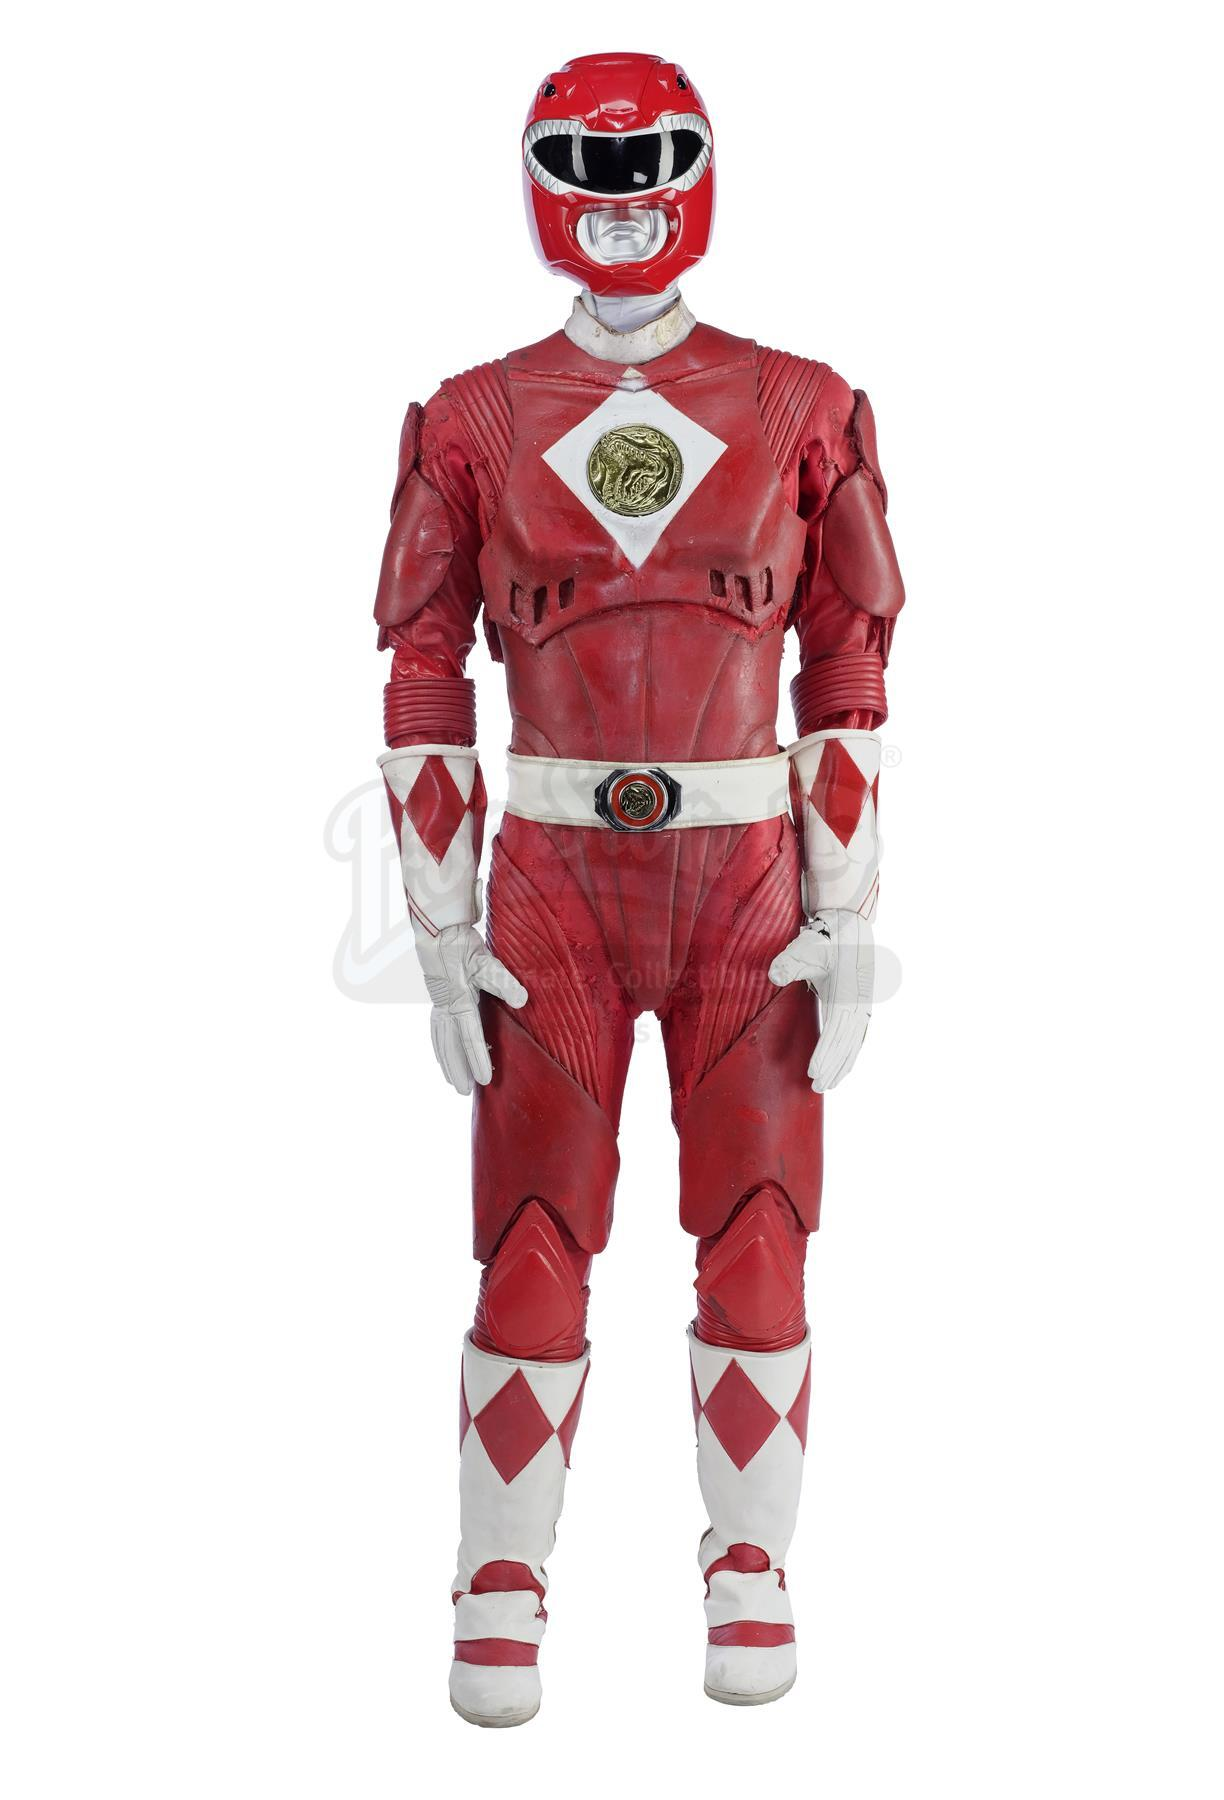 Lot # 184: MIGHTY MORPHIN' POWER RANGERS: THE MOVIE - Red Ranger (Steve Cardenas) Costume with Repli